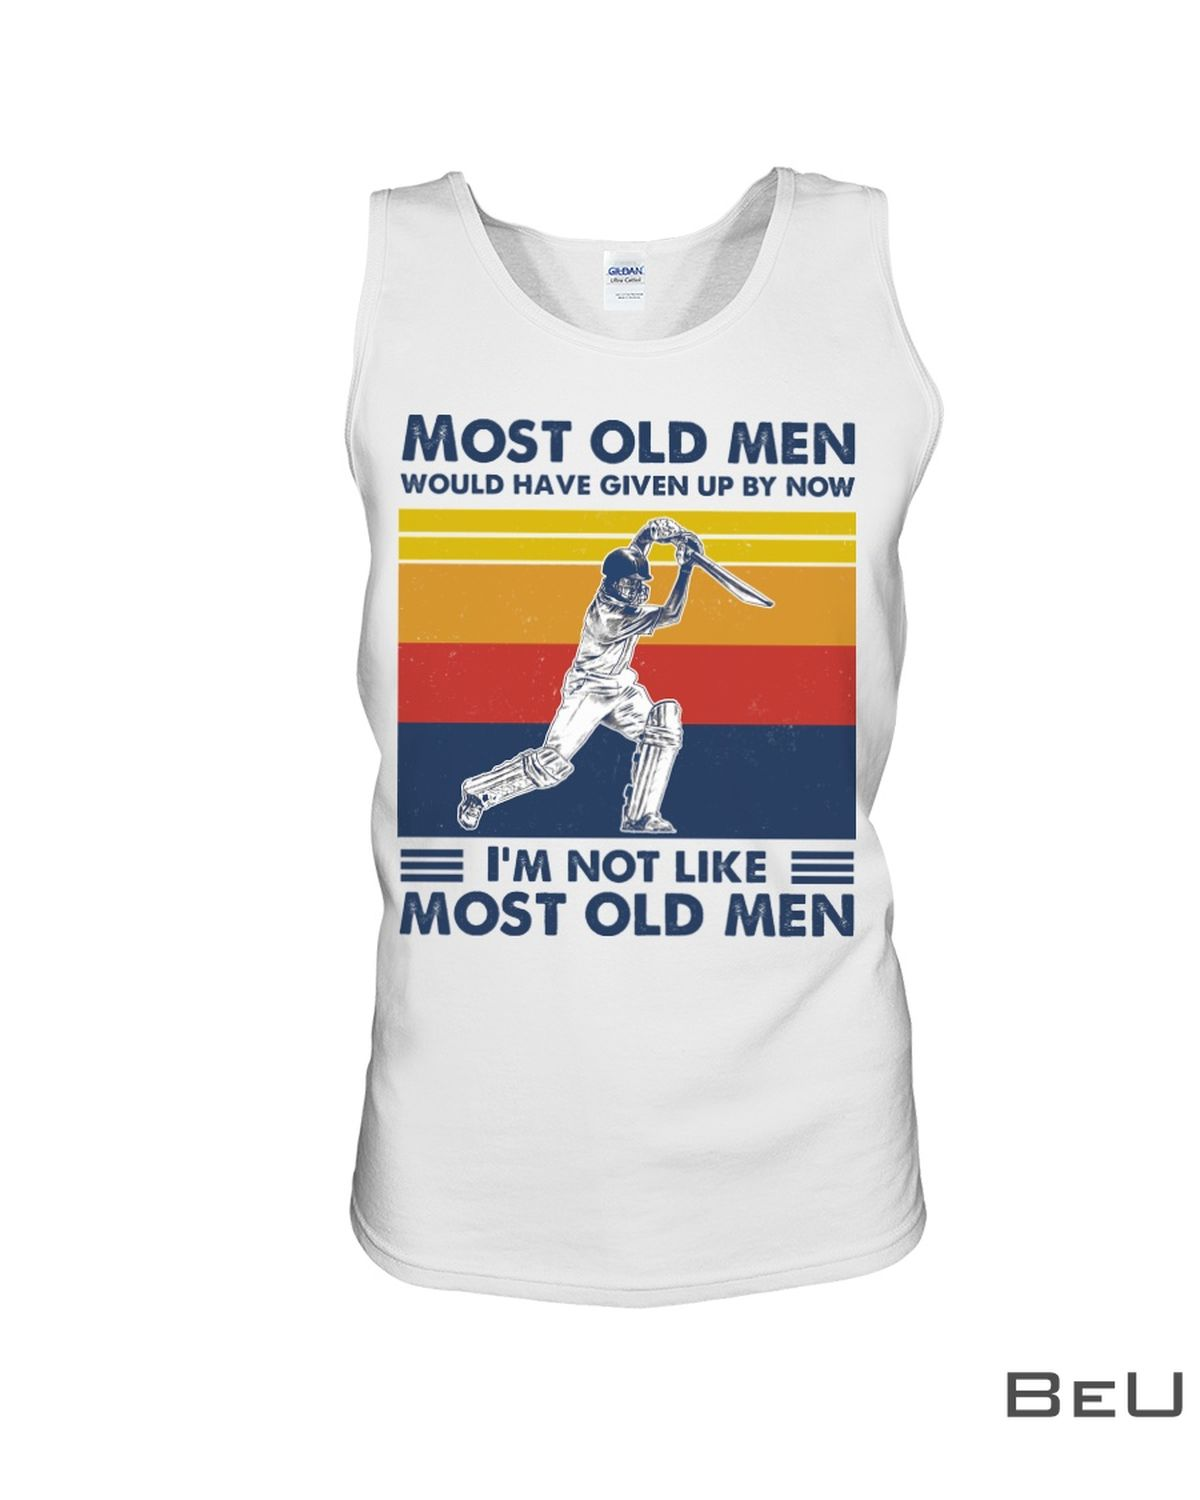 Cricket Most old men would have given up by now I'm not like most old men shirtc